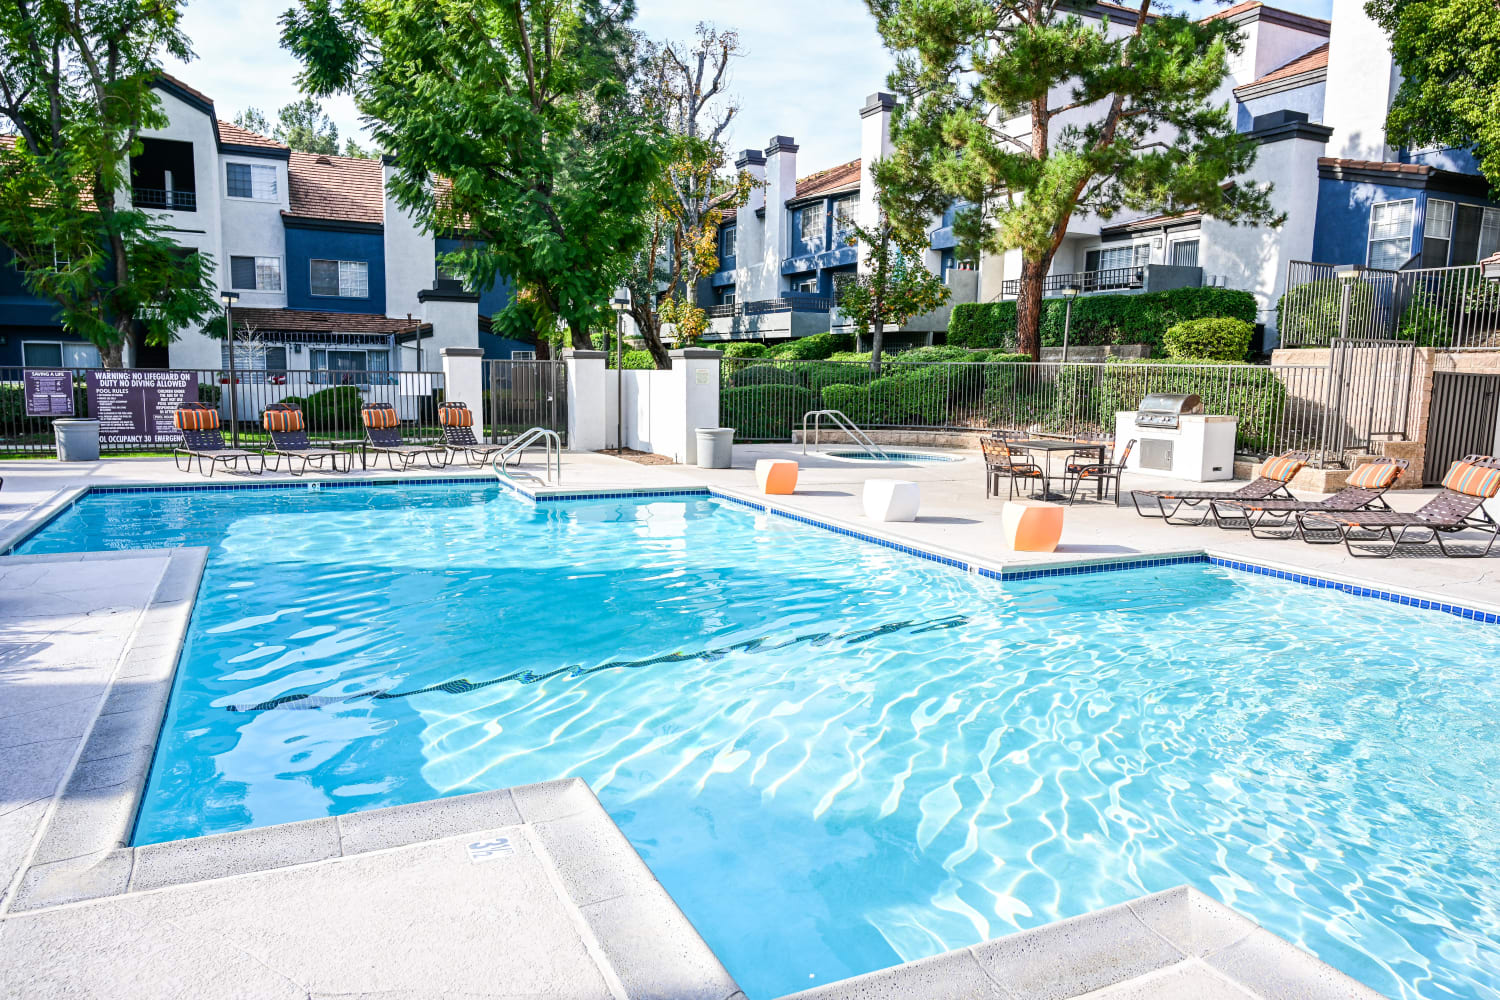 Pool view and beautifully landscaped grounds at Sierra Heights Apartments in Rancho Cucamonga, California